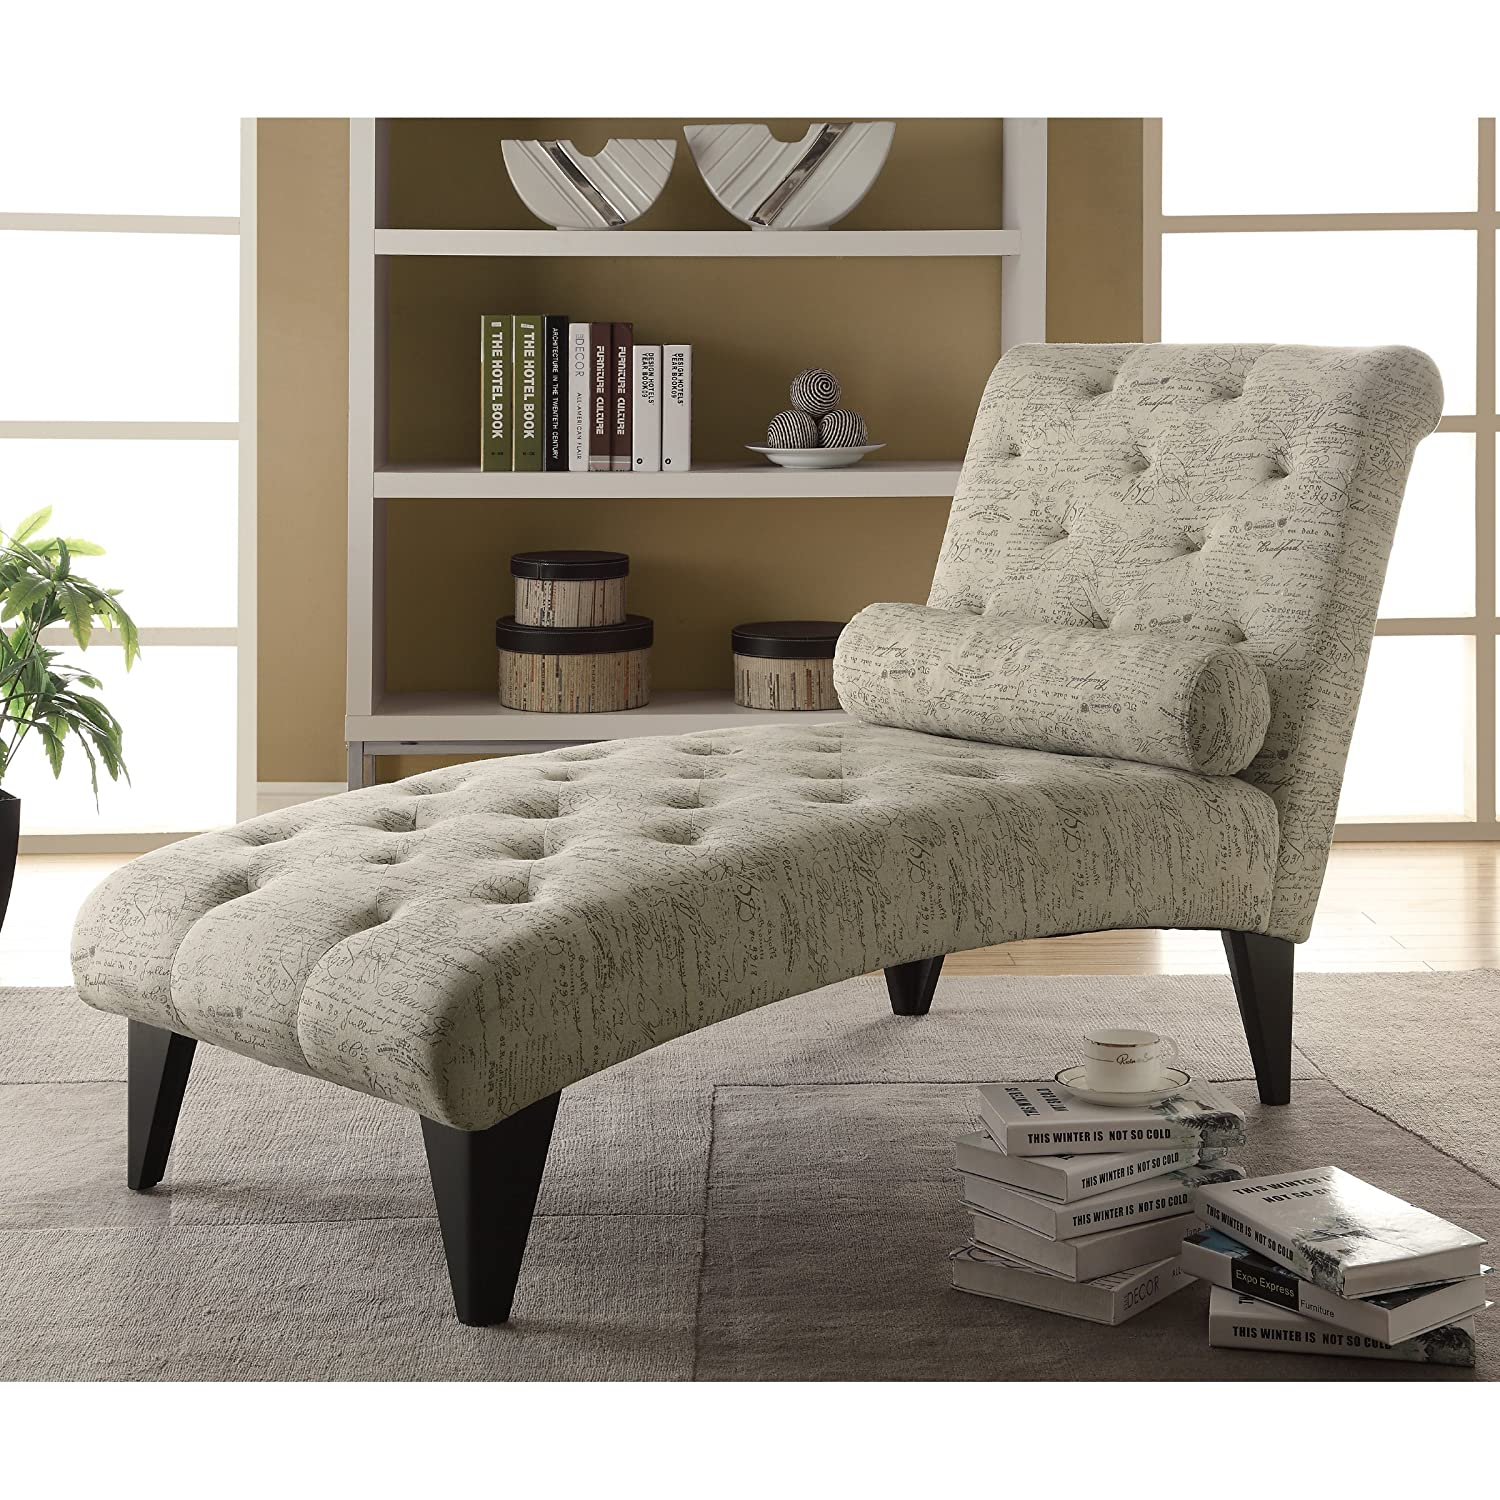 Home Lounger Indoor - Modern Contemporary Chaise Cushion Fabric Furniture Bedroom Living Spaces Relax Comfort